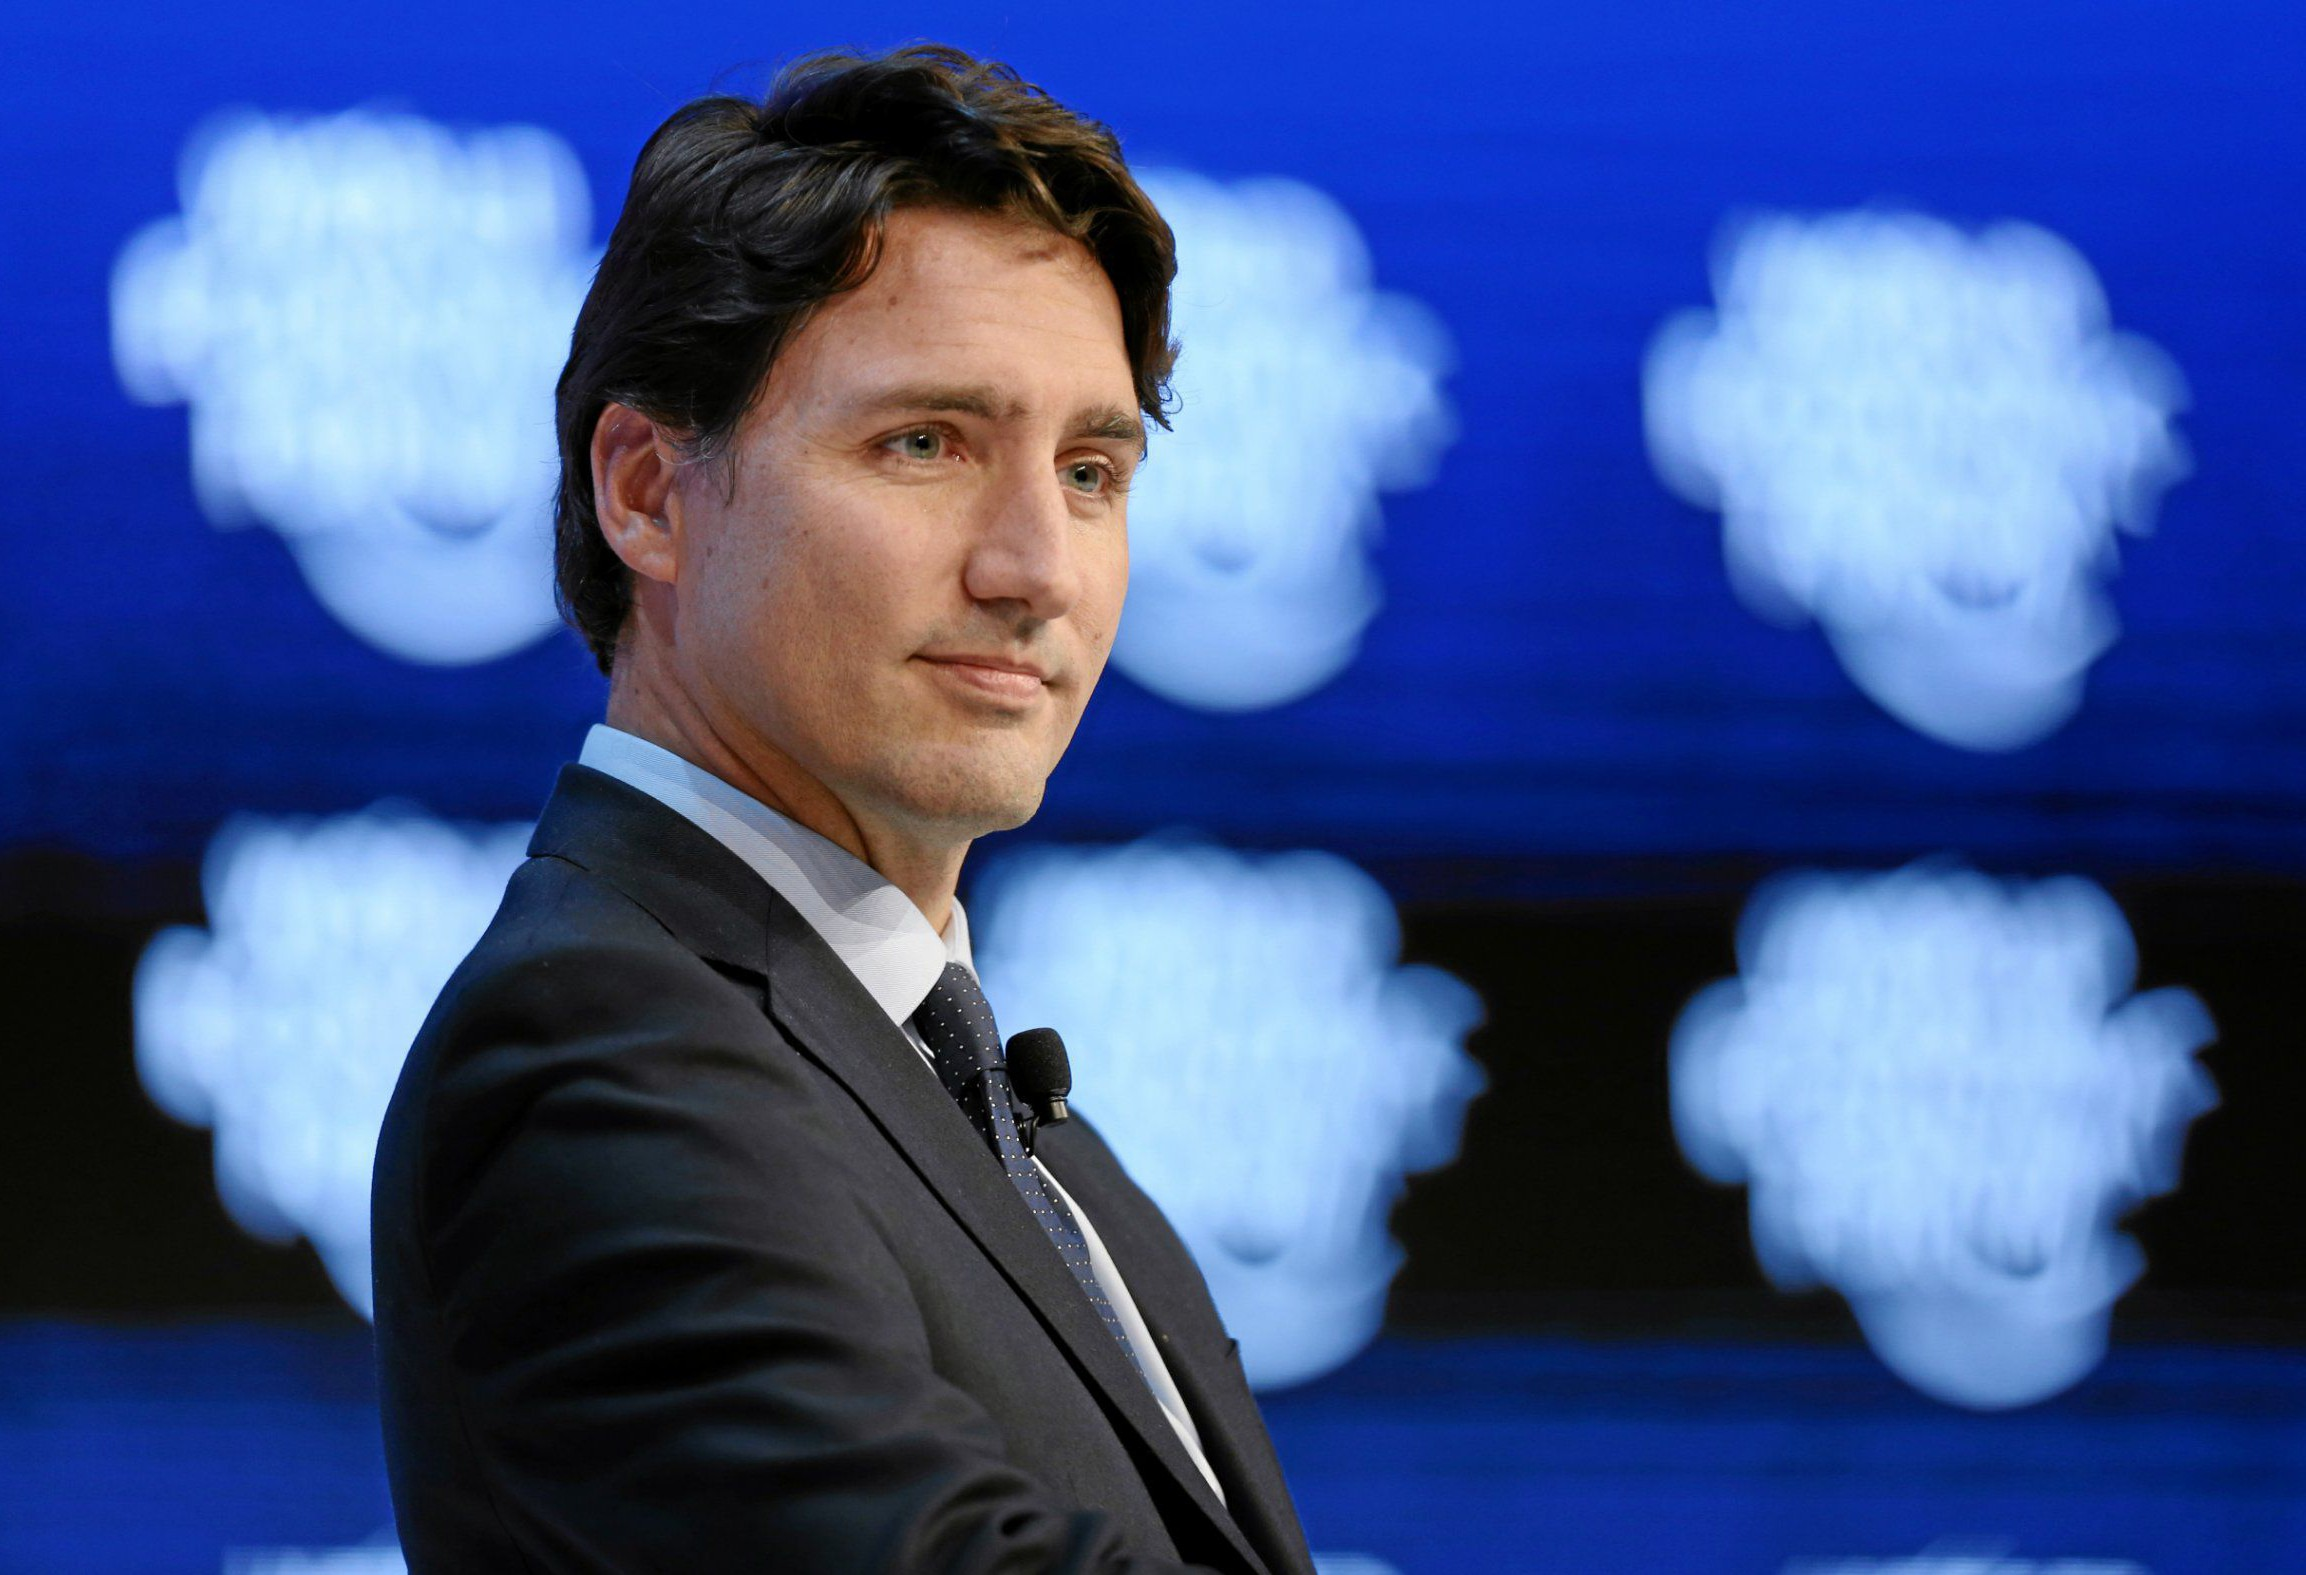 Justin Trudeau just made a really important point about feminism